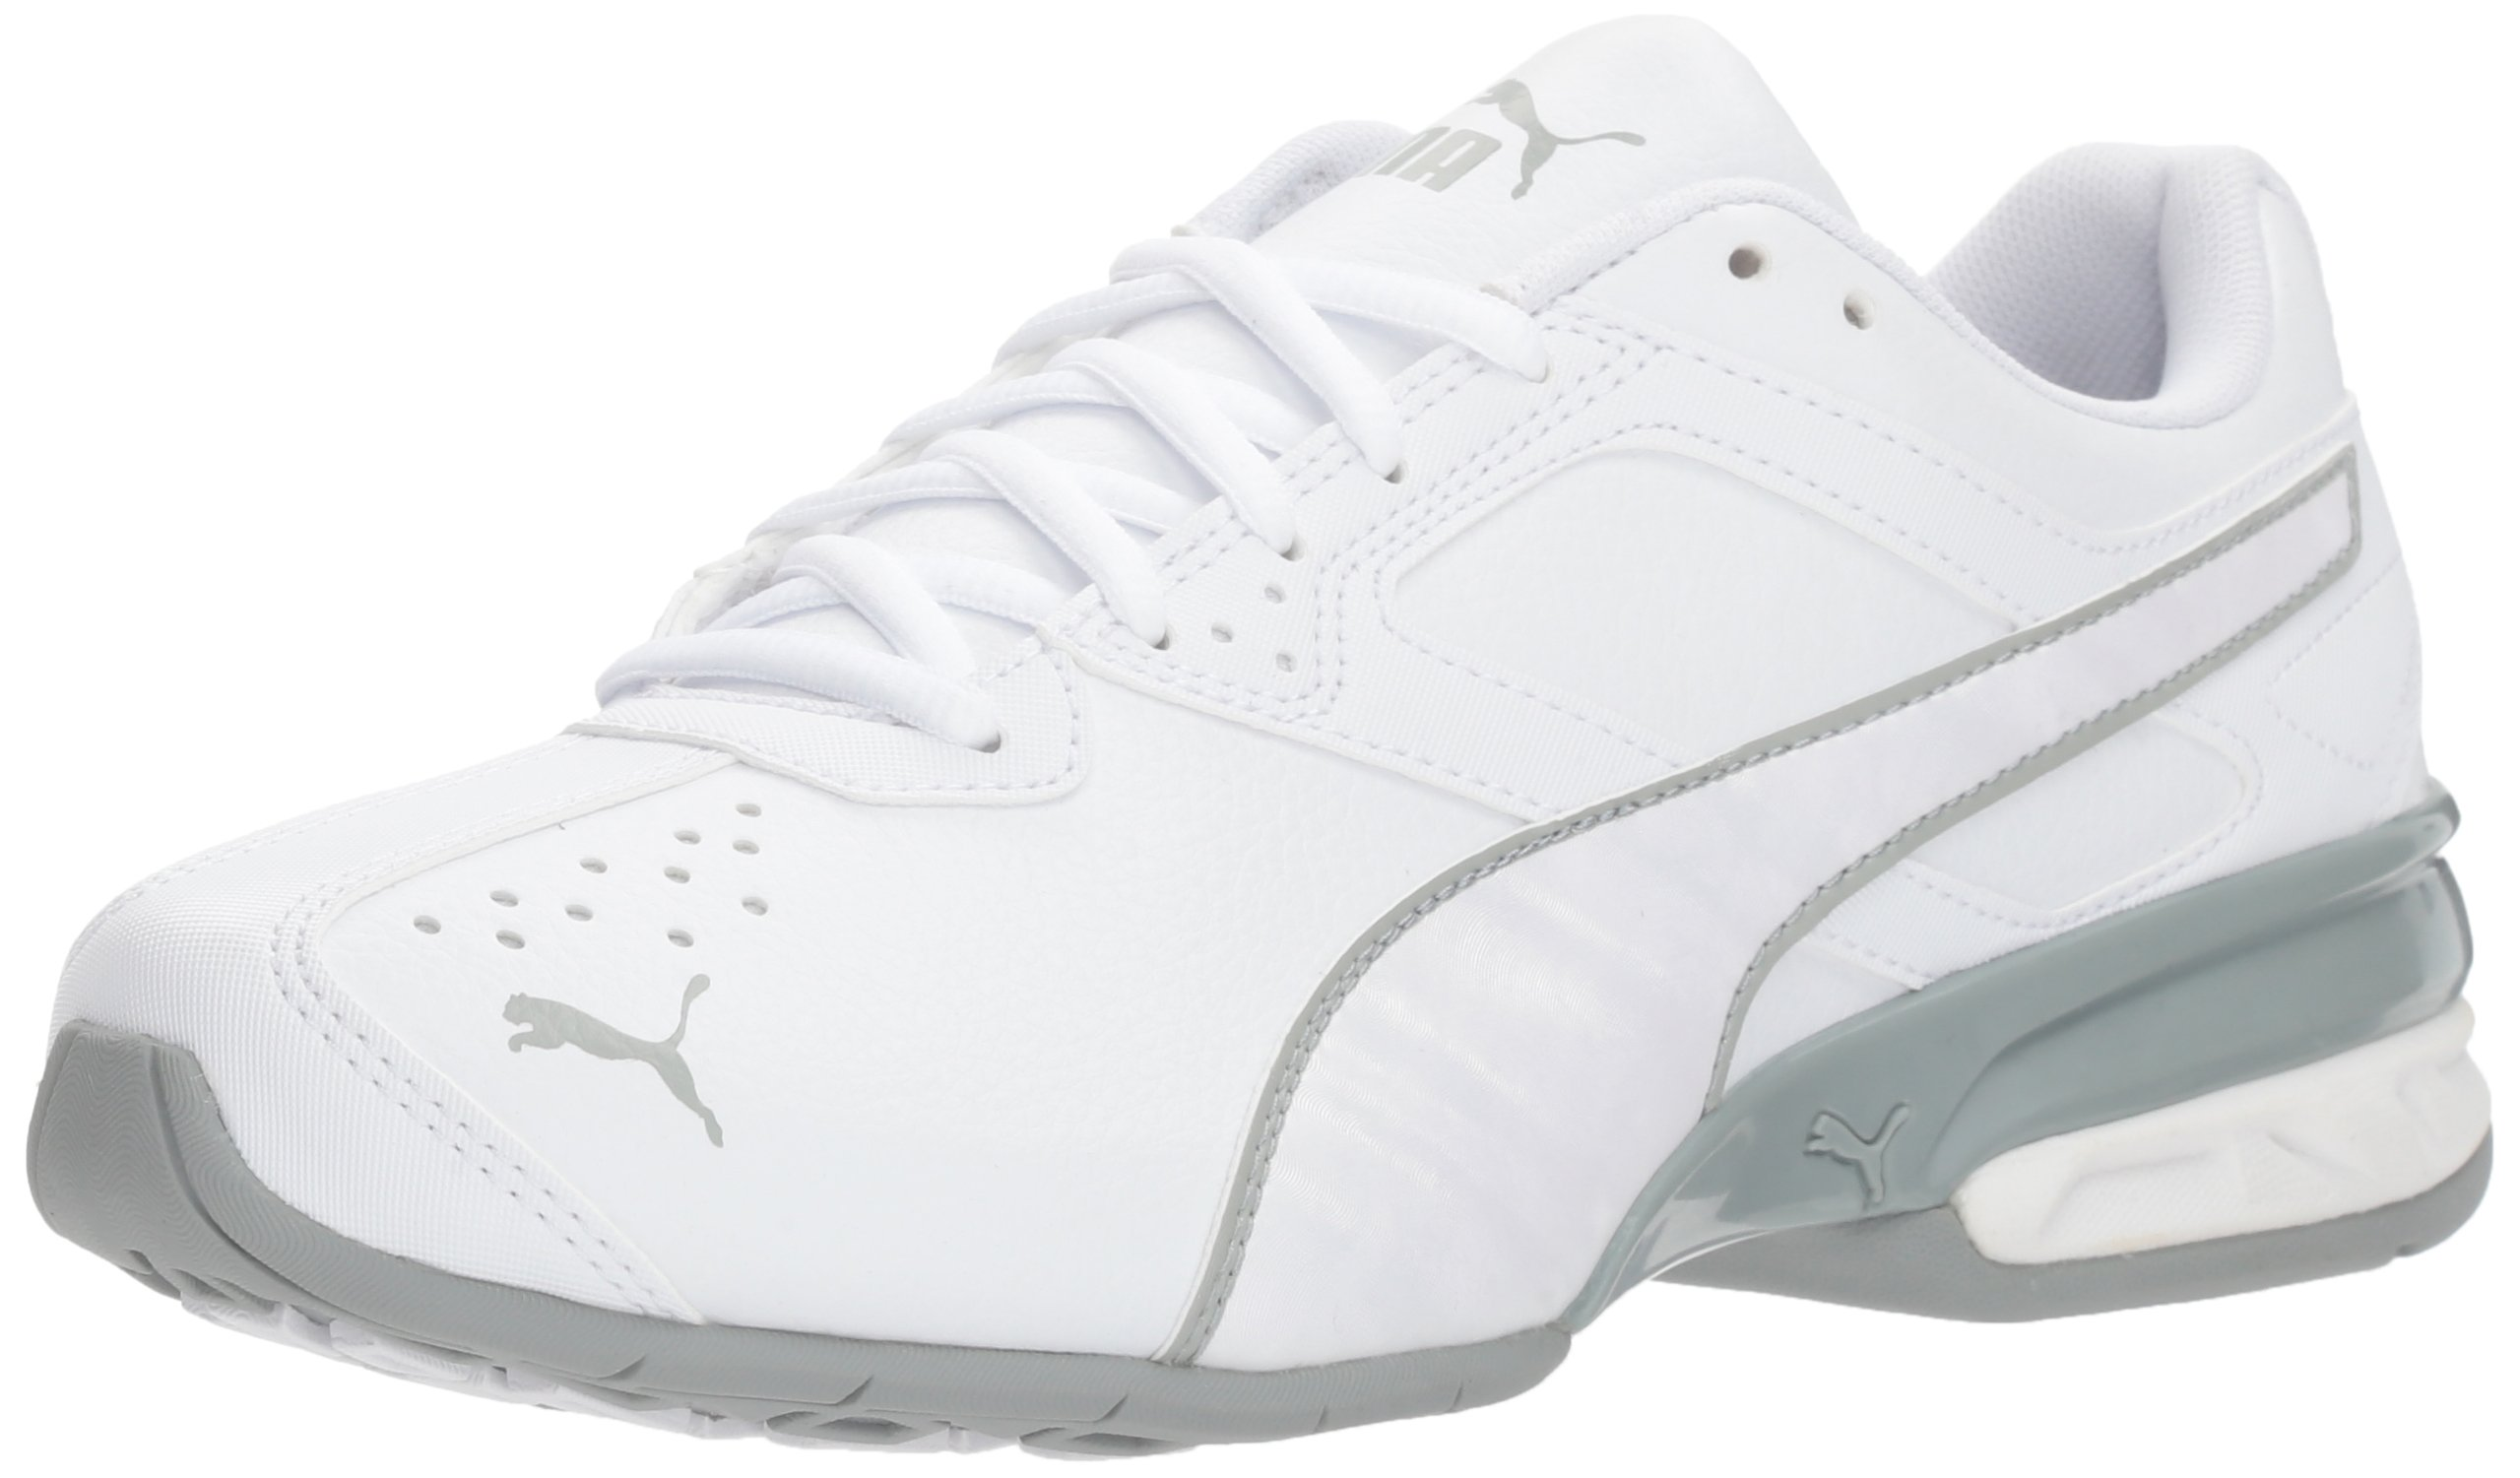 PUMA Women's Tazon 6 IRI Wn Sneaker White-Quarry, 5.5 M US